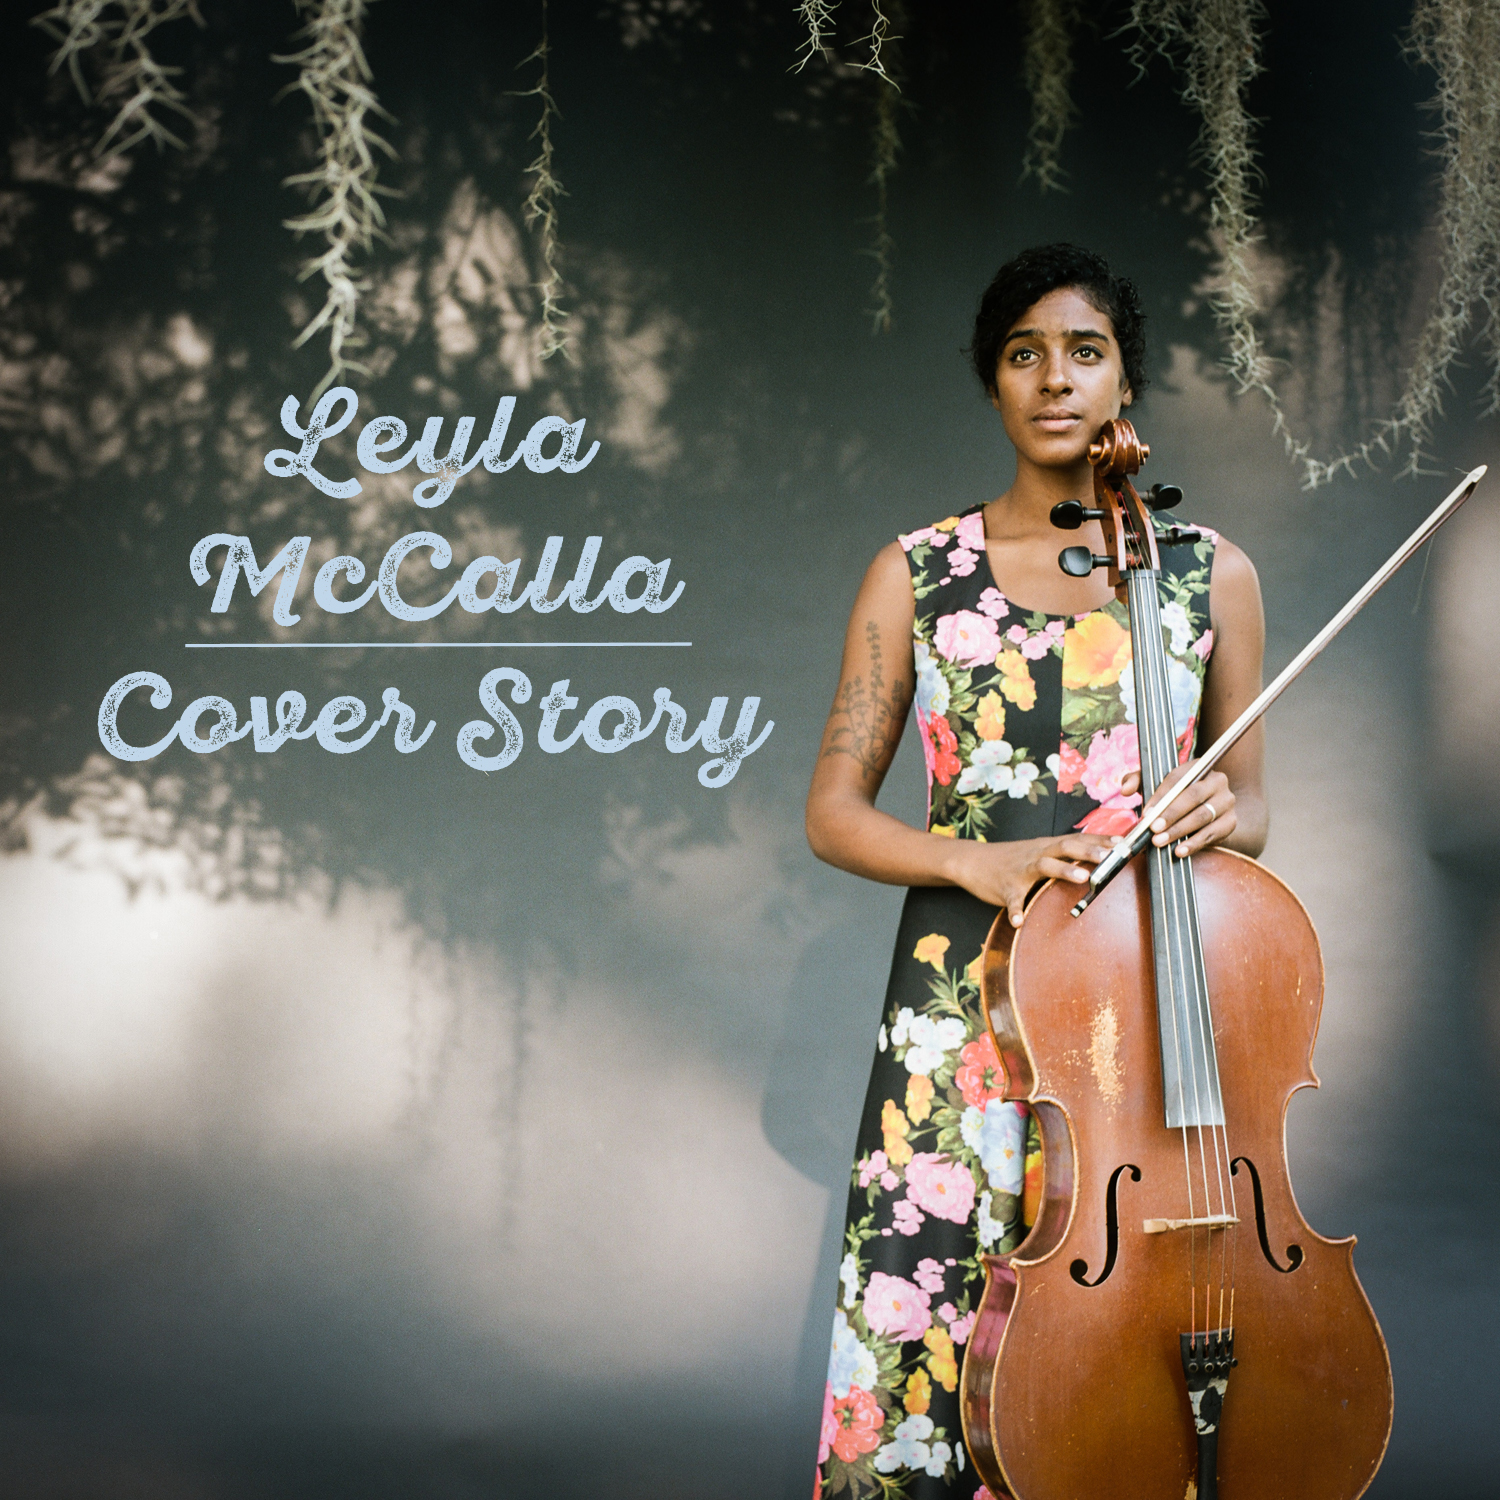 On Histories, Stories, and Identities: A Conversation with Leyla McCalla